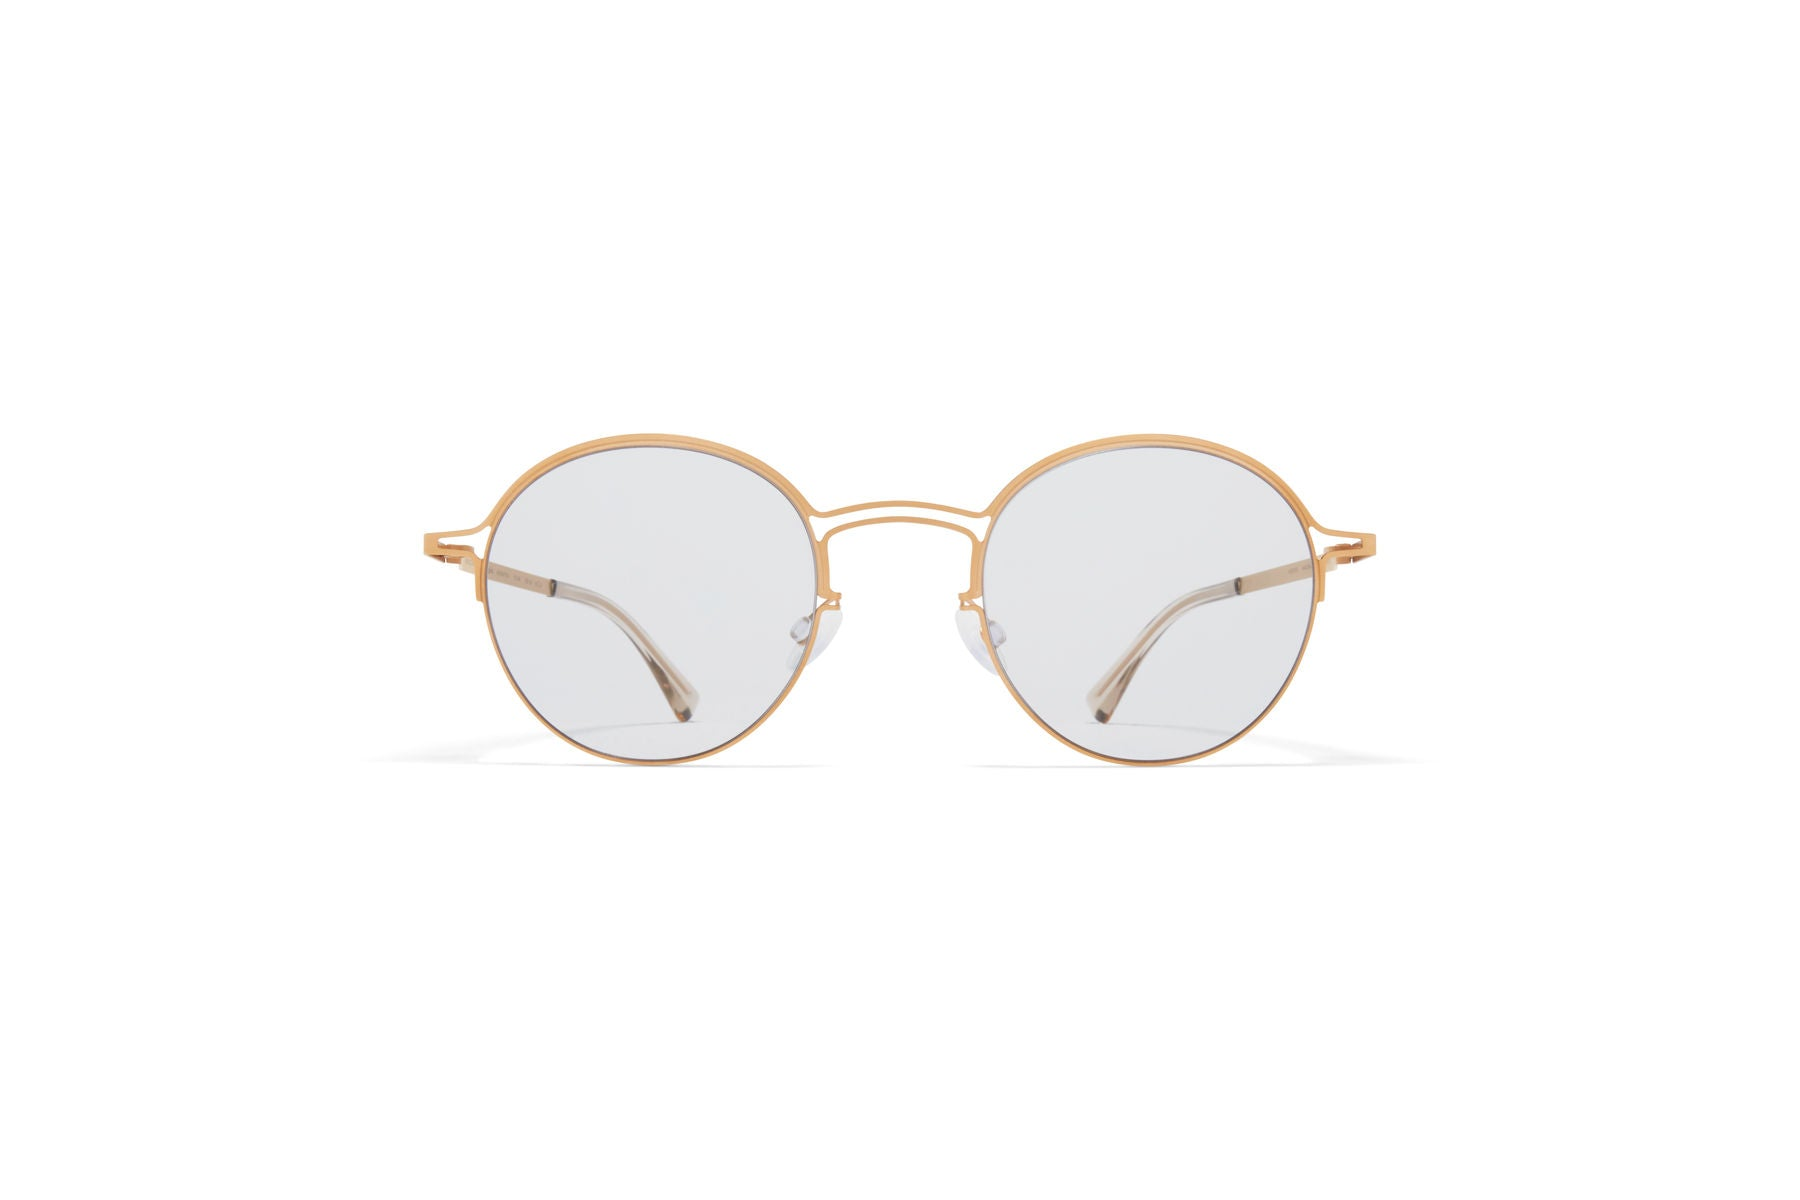 Mykita + Maison Margiela MMCRAFT 014 - City Optikhaus